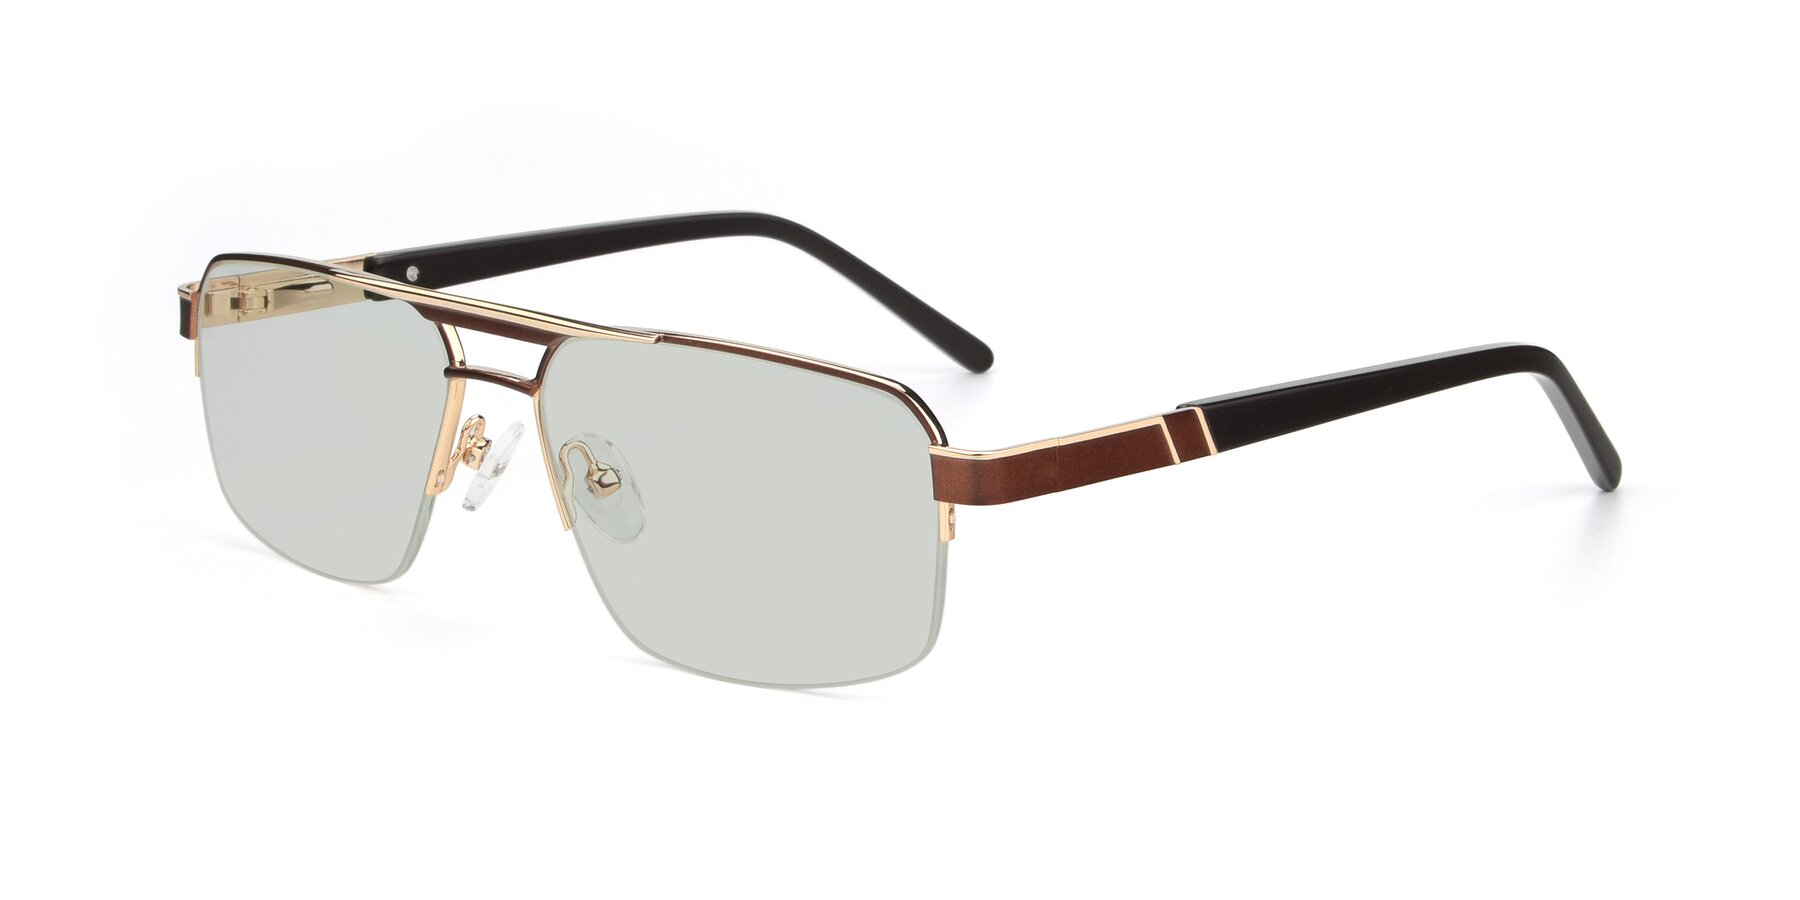 Angle of 19004 in Bronze-Gold with Light Green Tinted Lenses